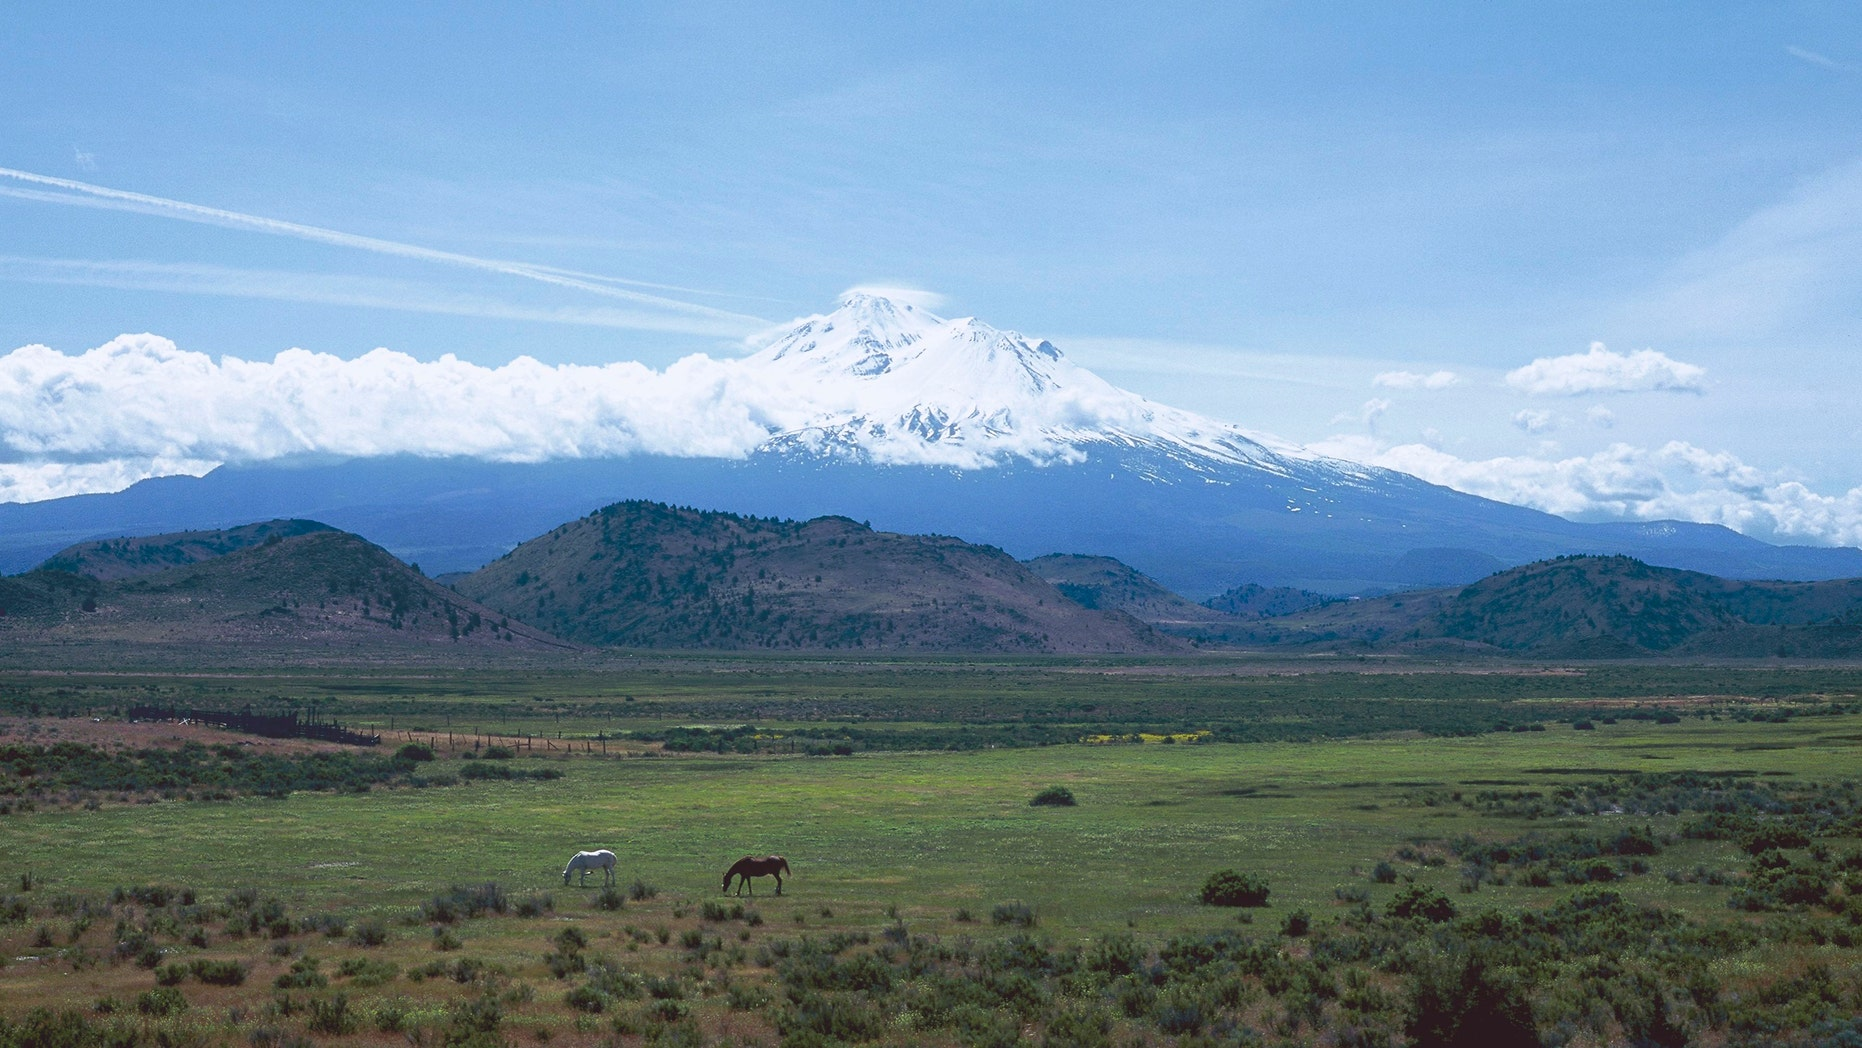 File photo - the Shasta volcano in California, United States